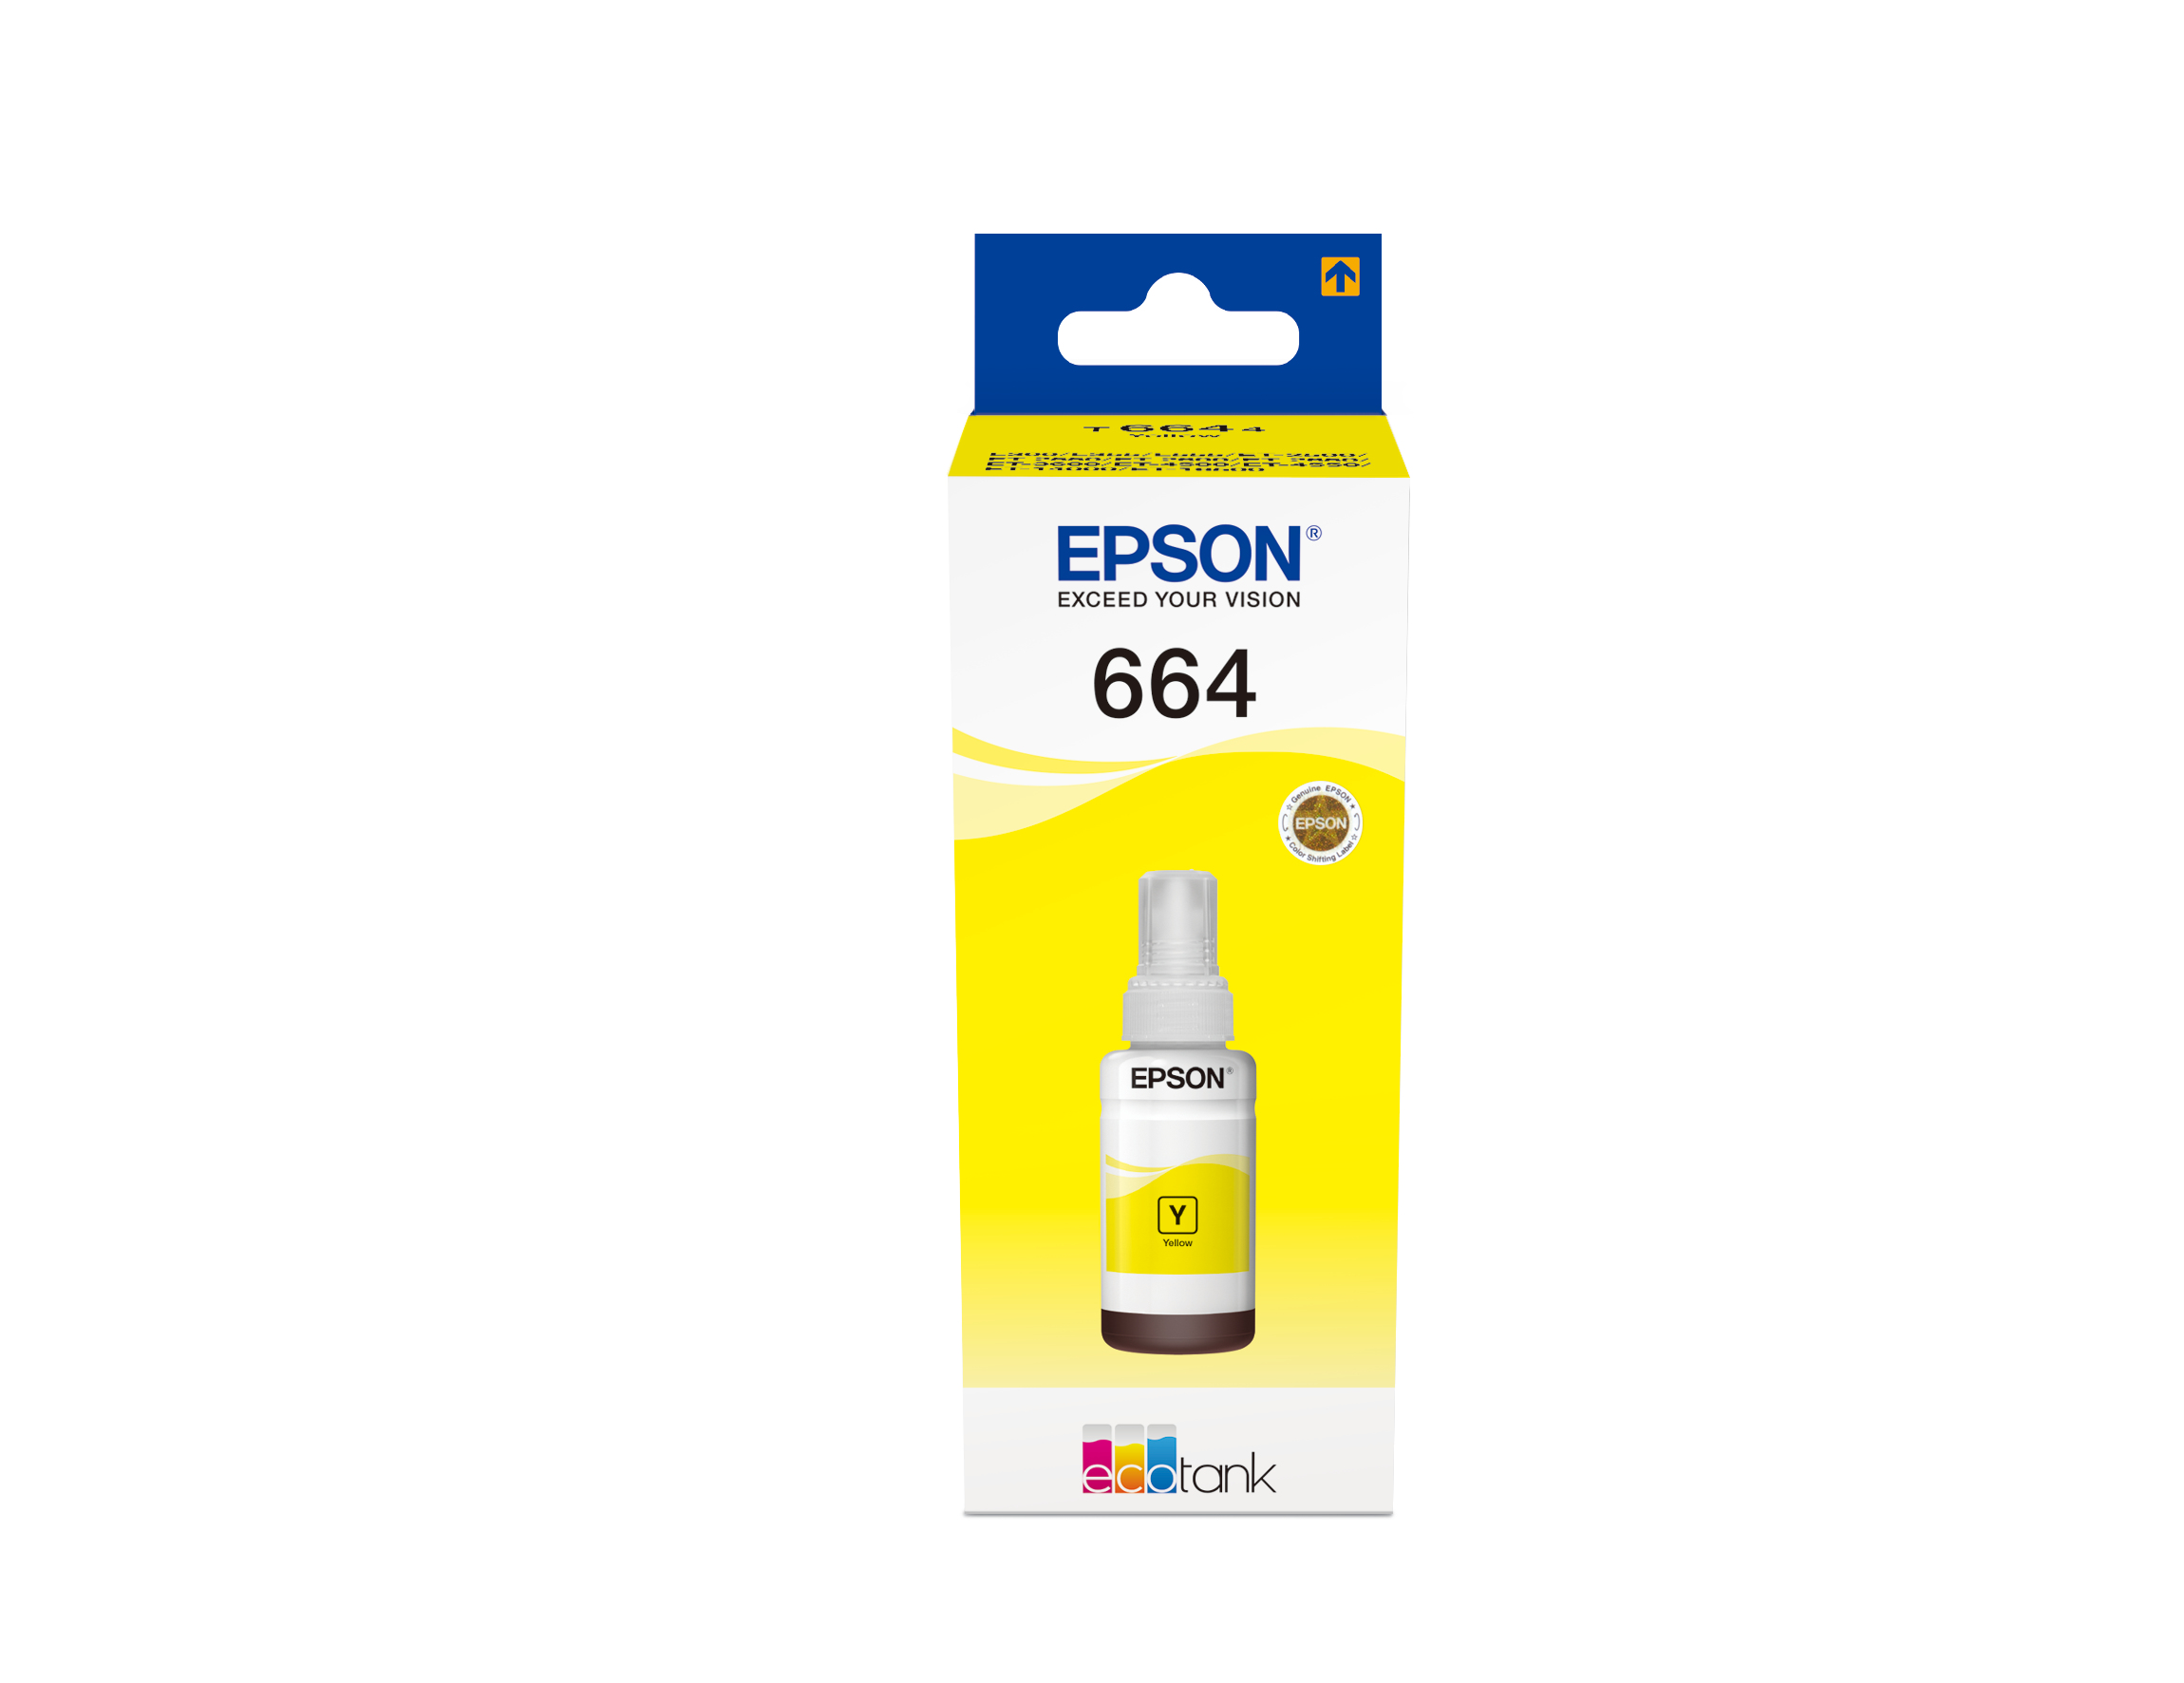 epson Epson T6644 Ecotank Yellow Ink 70ml C13t664440 - AD01